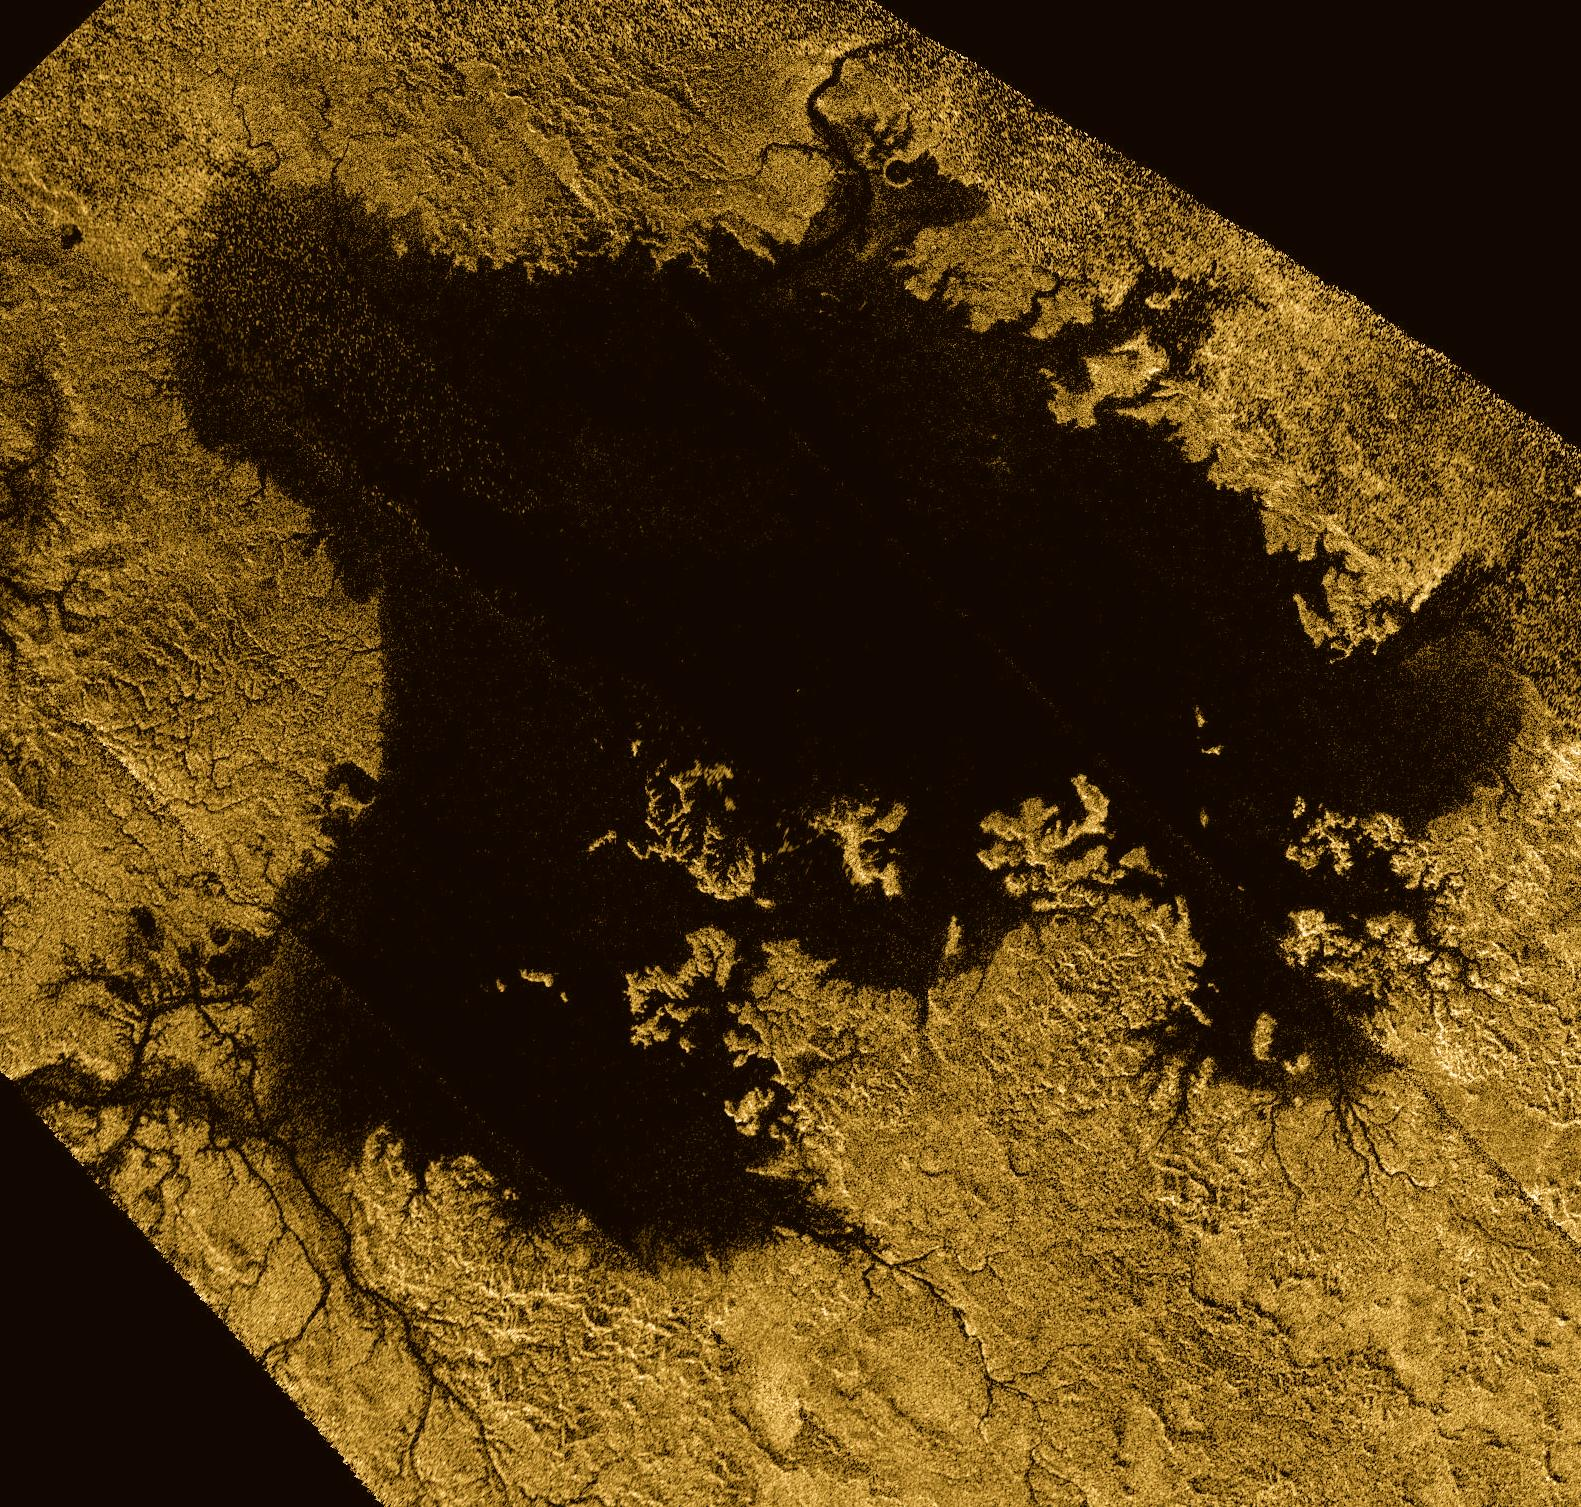 Ligeia Mare, shown here in a false-color image from NASA's Cassini mission, is the second largest known body of liquid on Saturn's moon Titan.